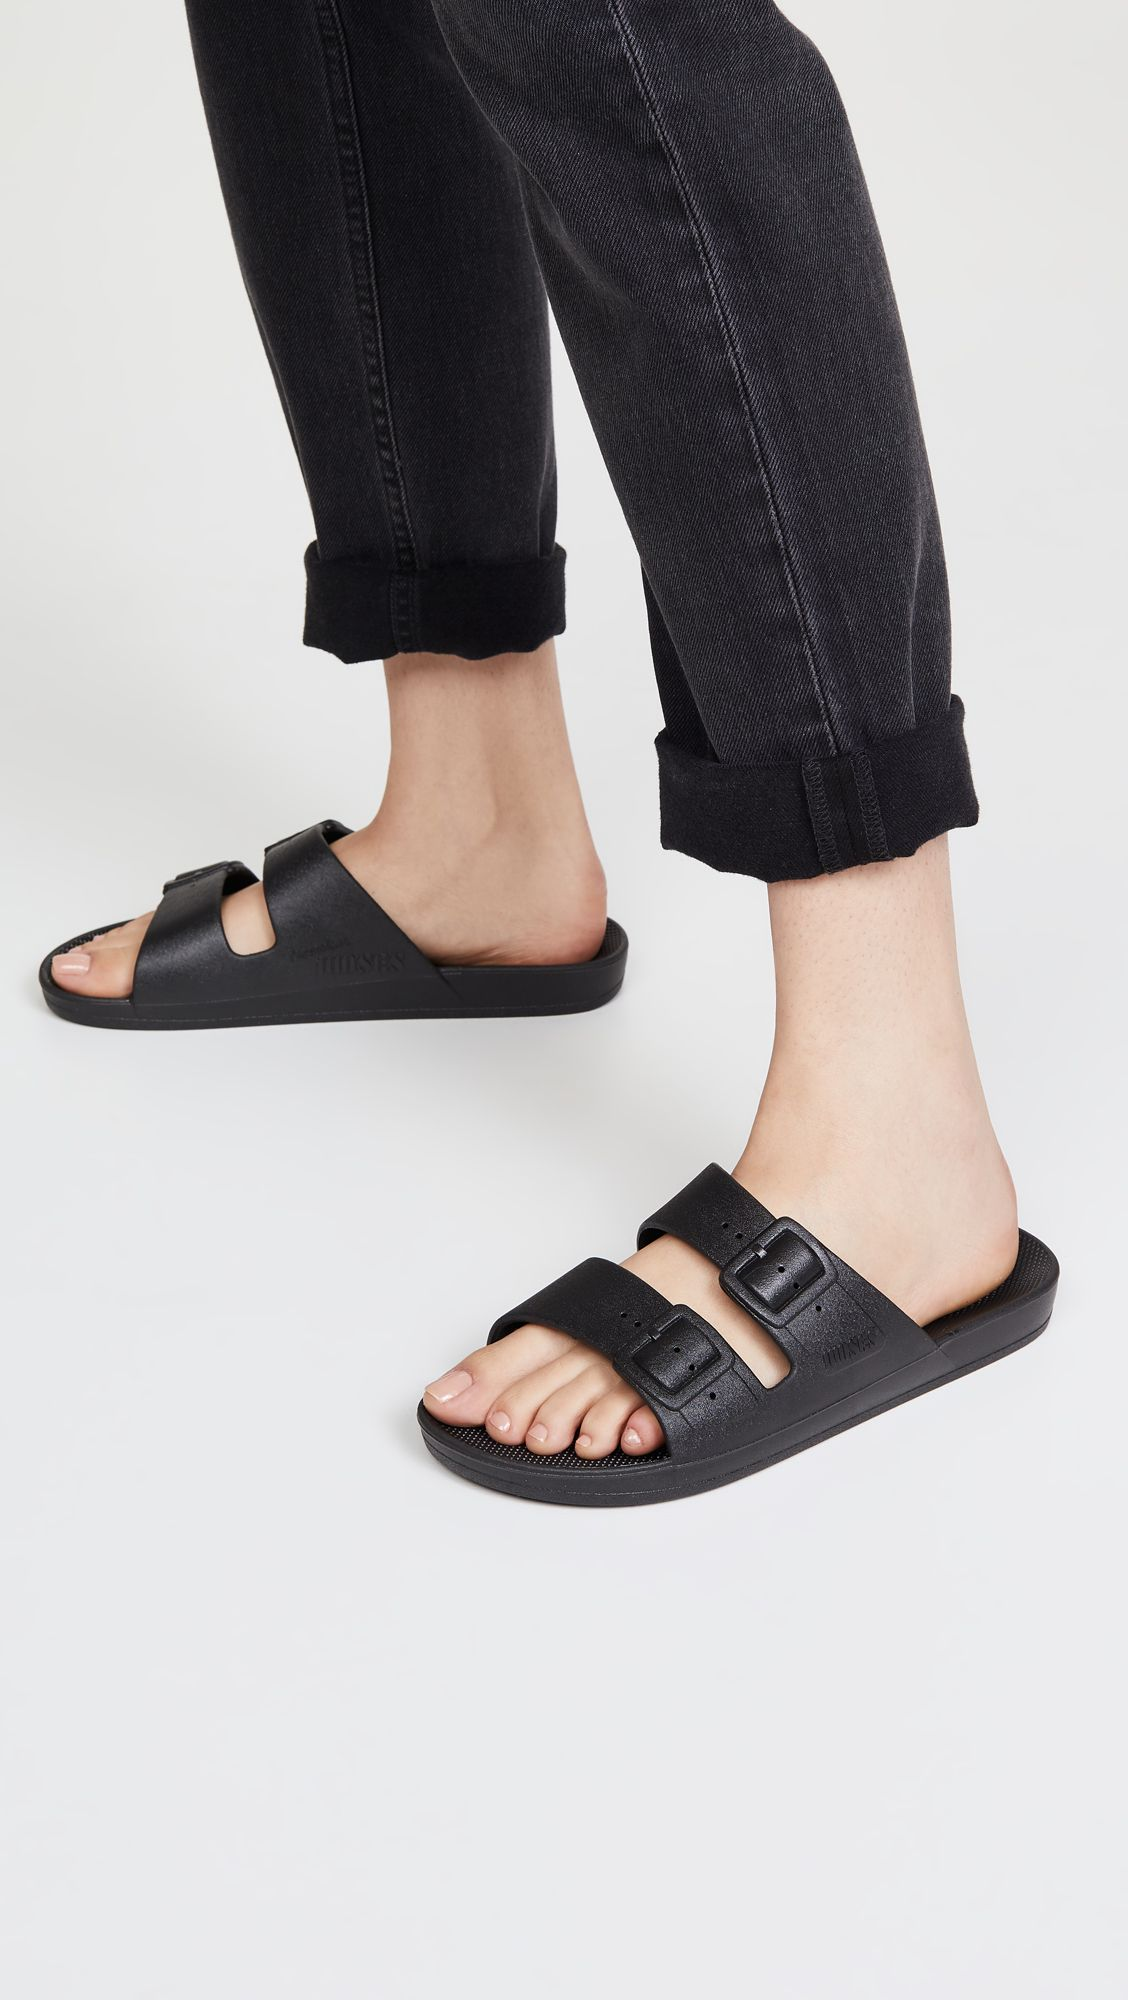 Huge Packing Mistake: These Shoes - worst shoes to pack 231259 1628540450116